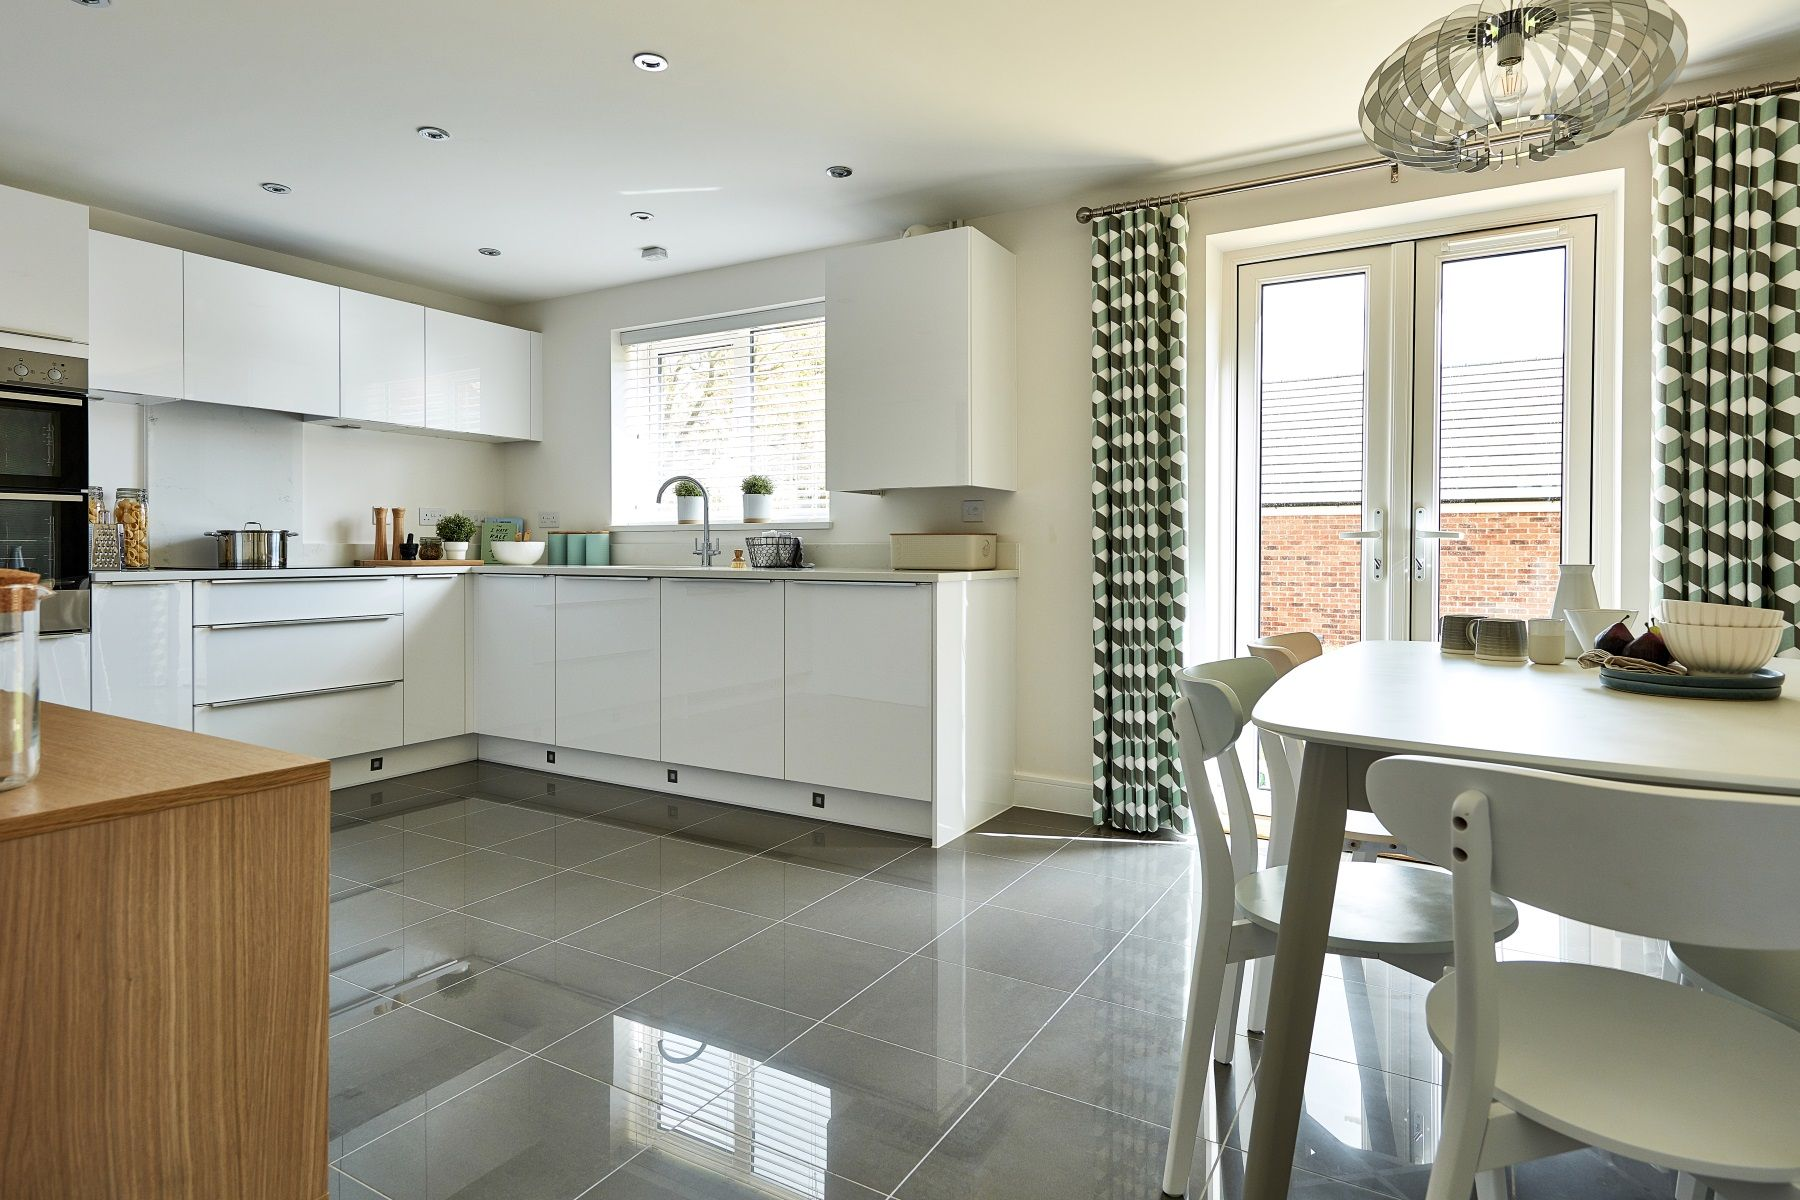 TW Exeter - Mayfield Gardens - Midford example kitchen 2